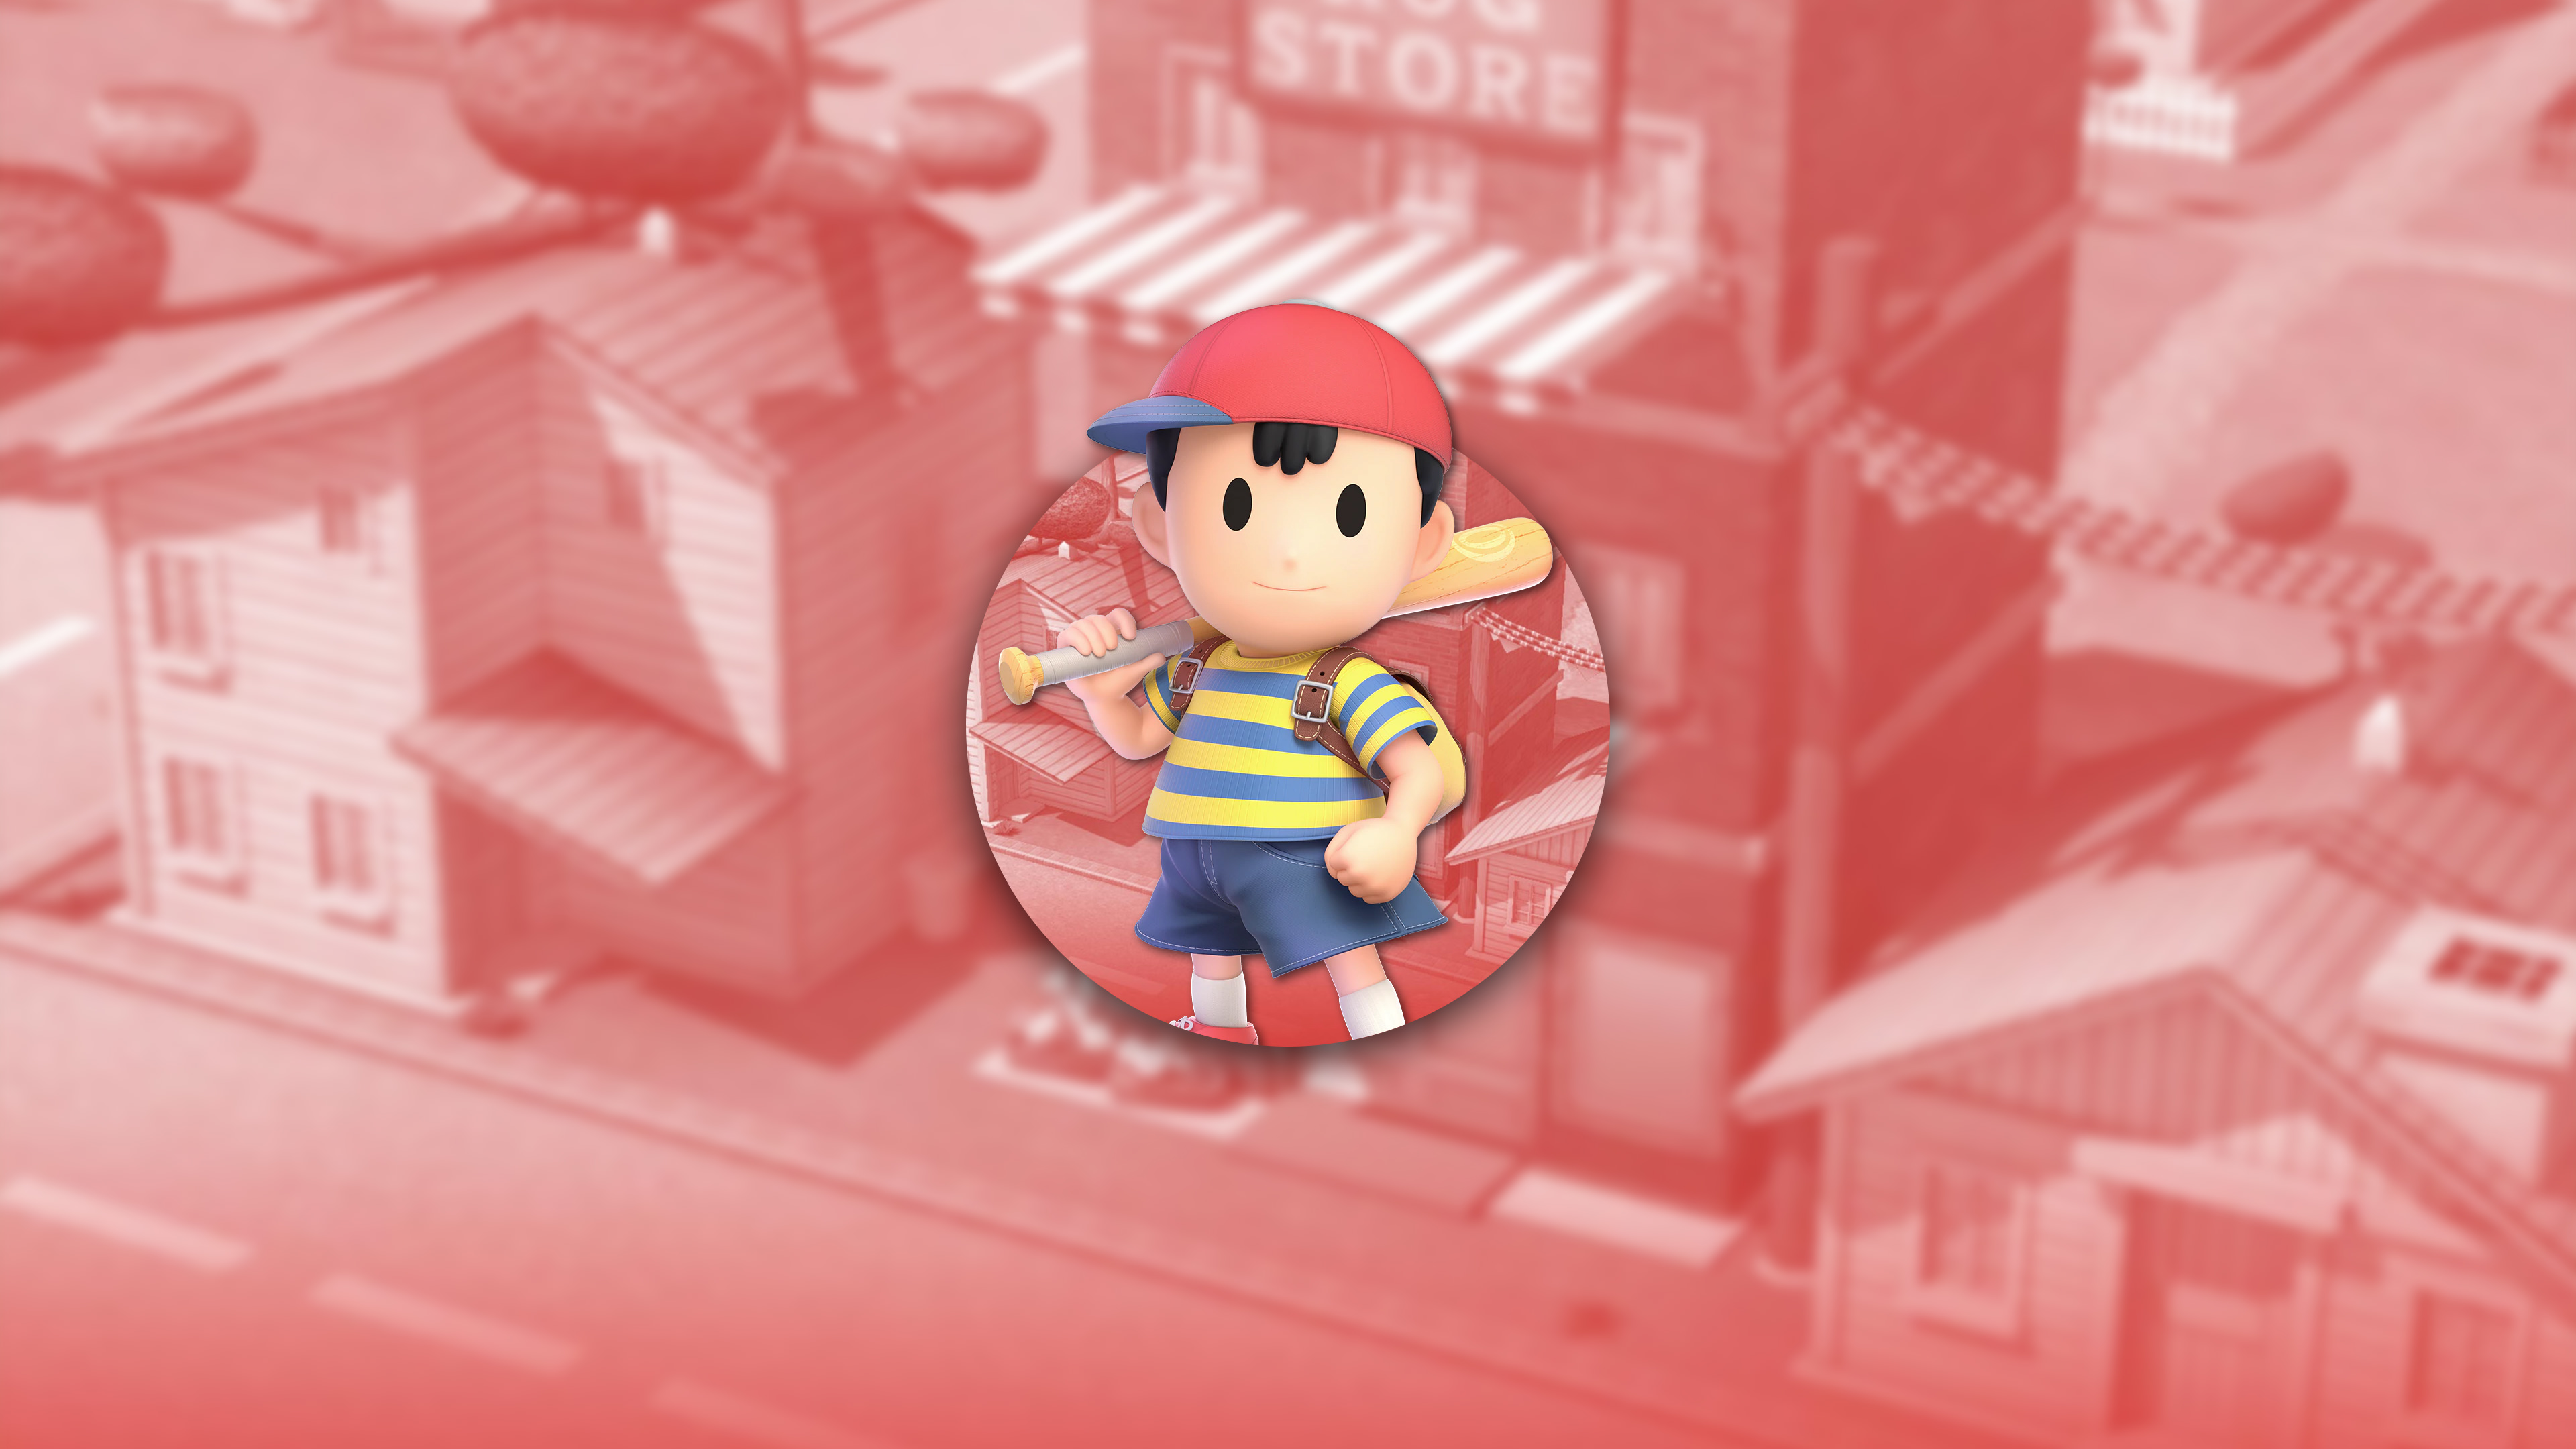 super smash bros ultimate ness uhd 4k wallpaper